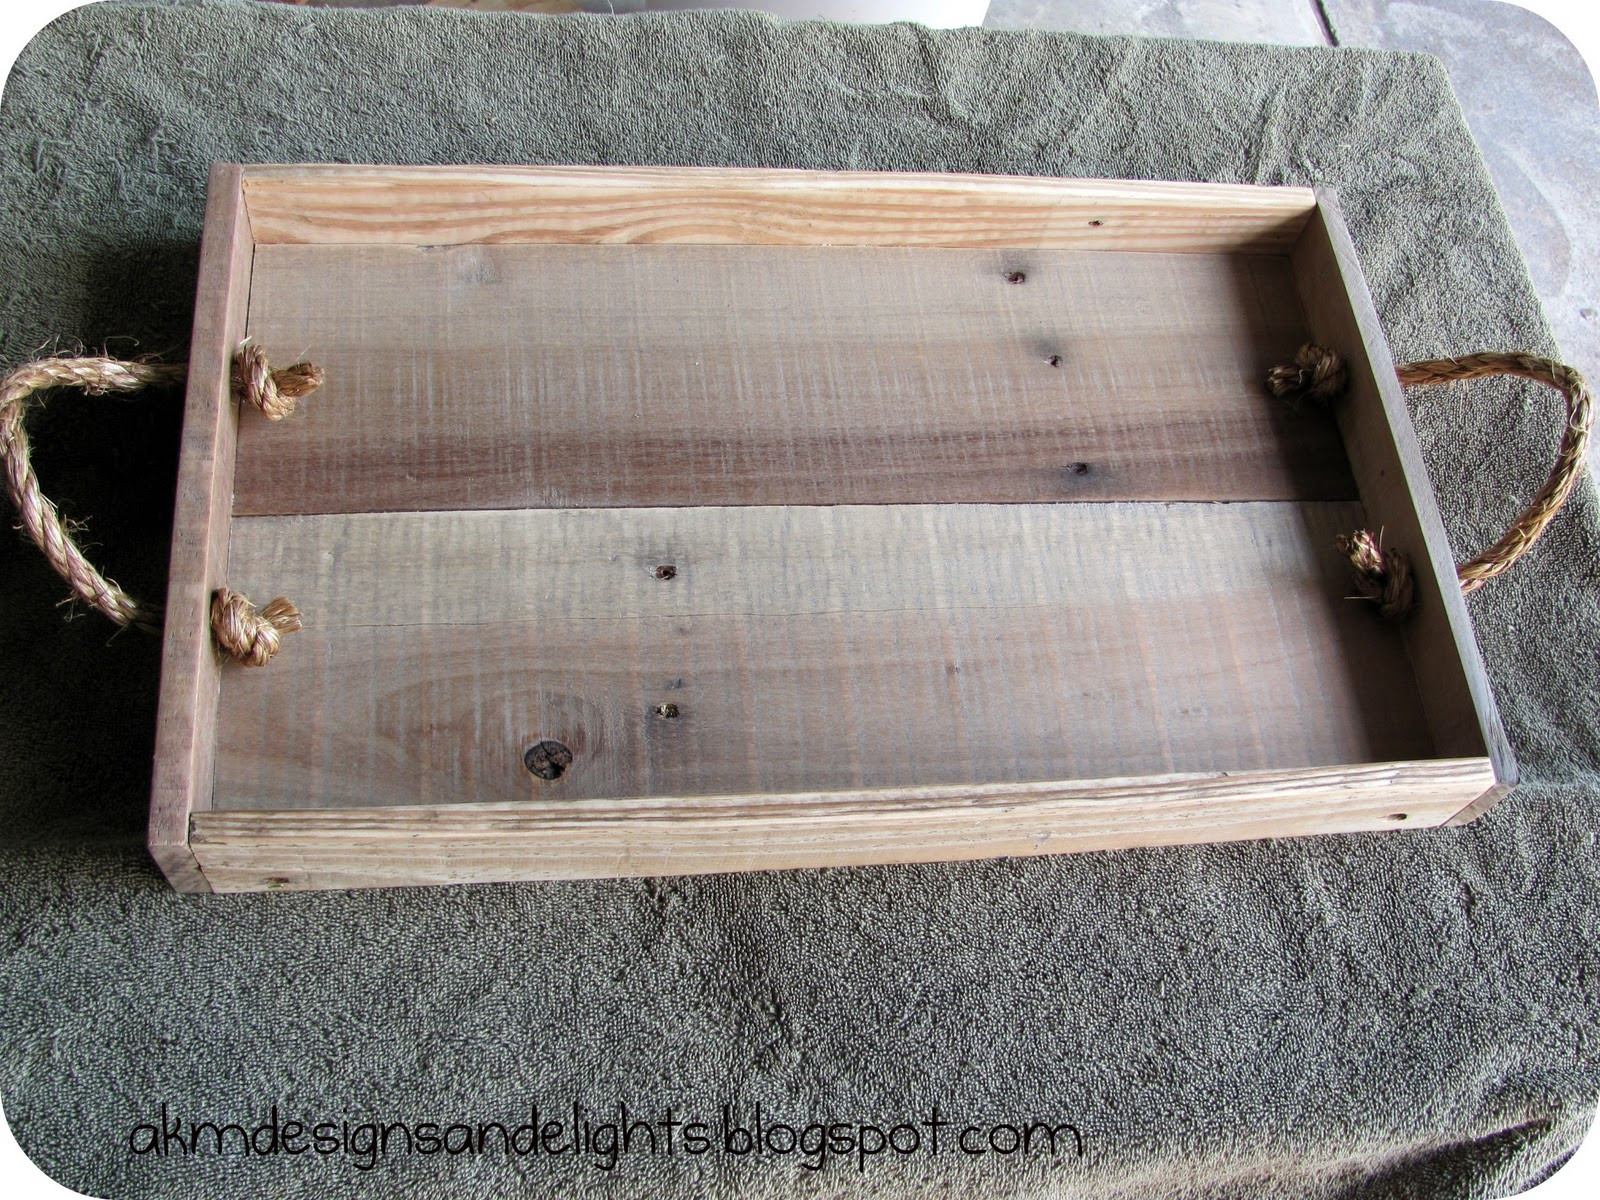 Best ideas about DIY Wood Trays . Save or Pin AKM designs and delights DIY Pallet Wood Tray Tutorial Now.